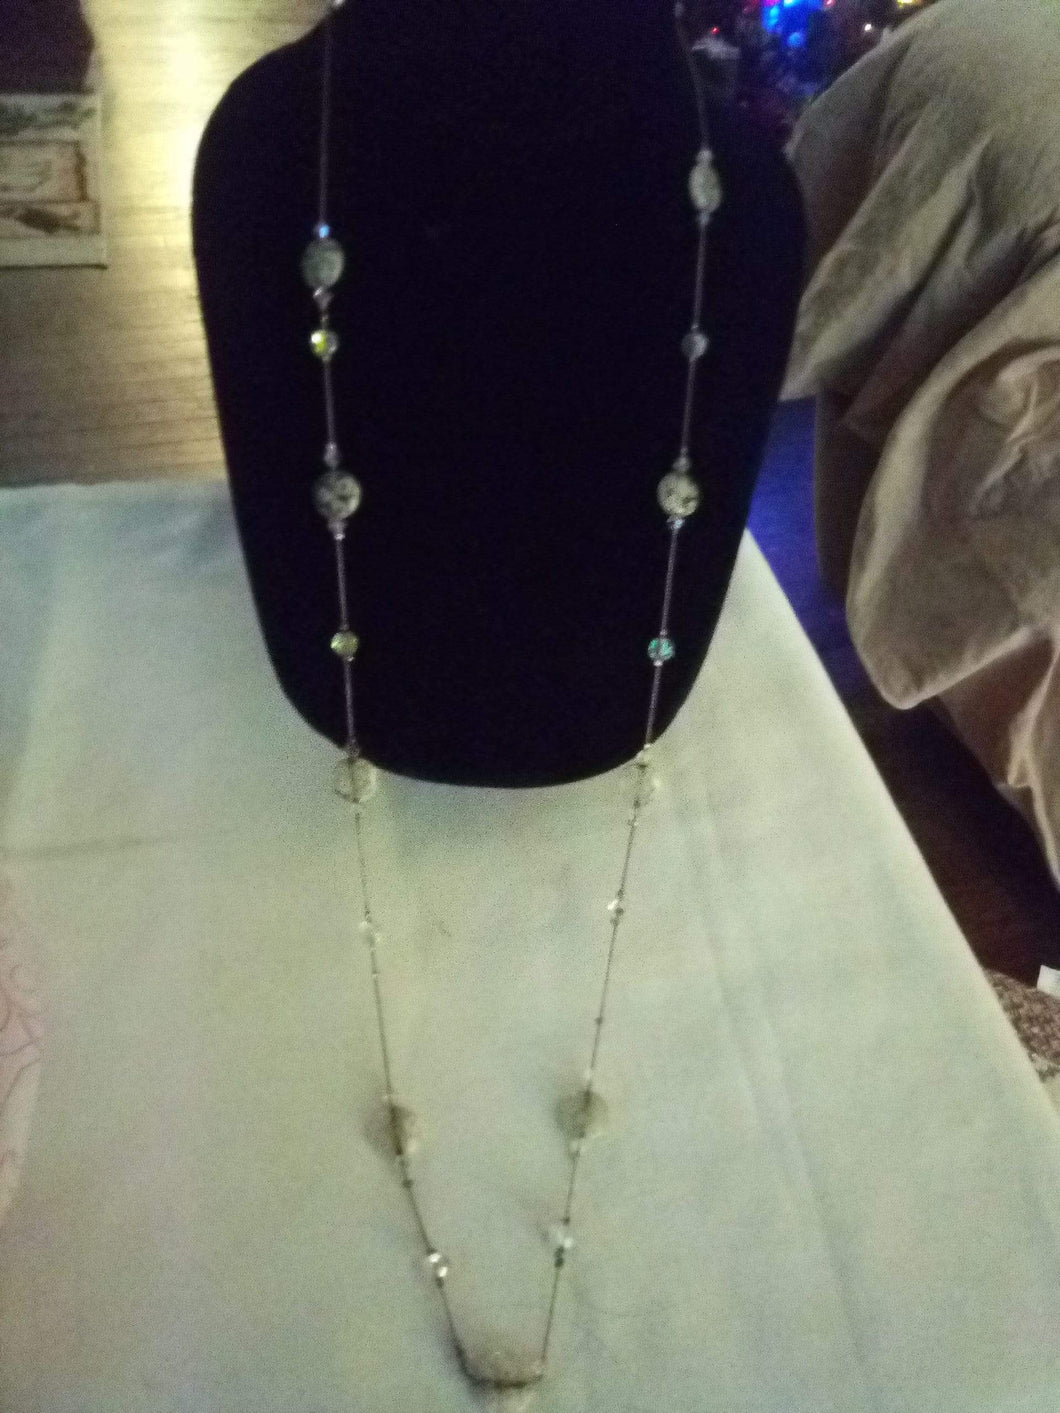 Neat long necklace with added crystals - B&P'sringsnthings